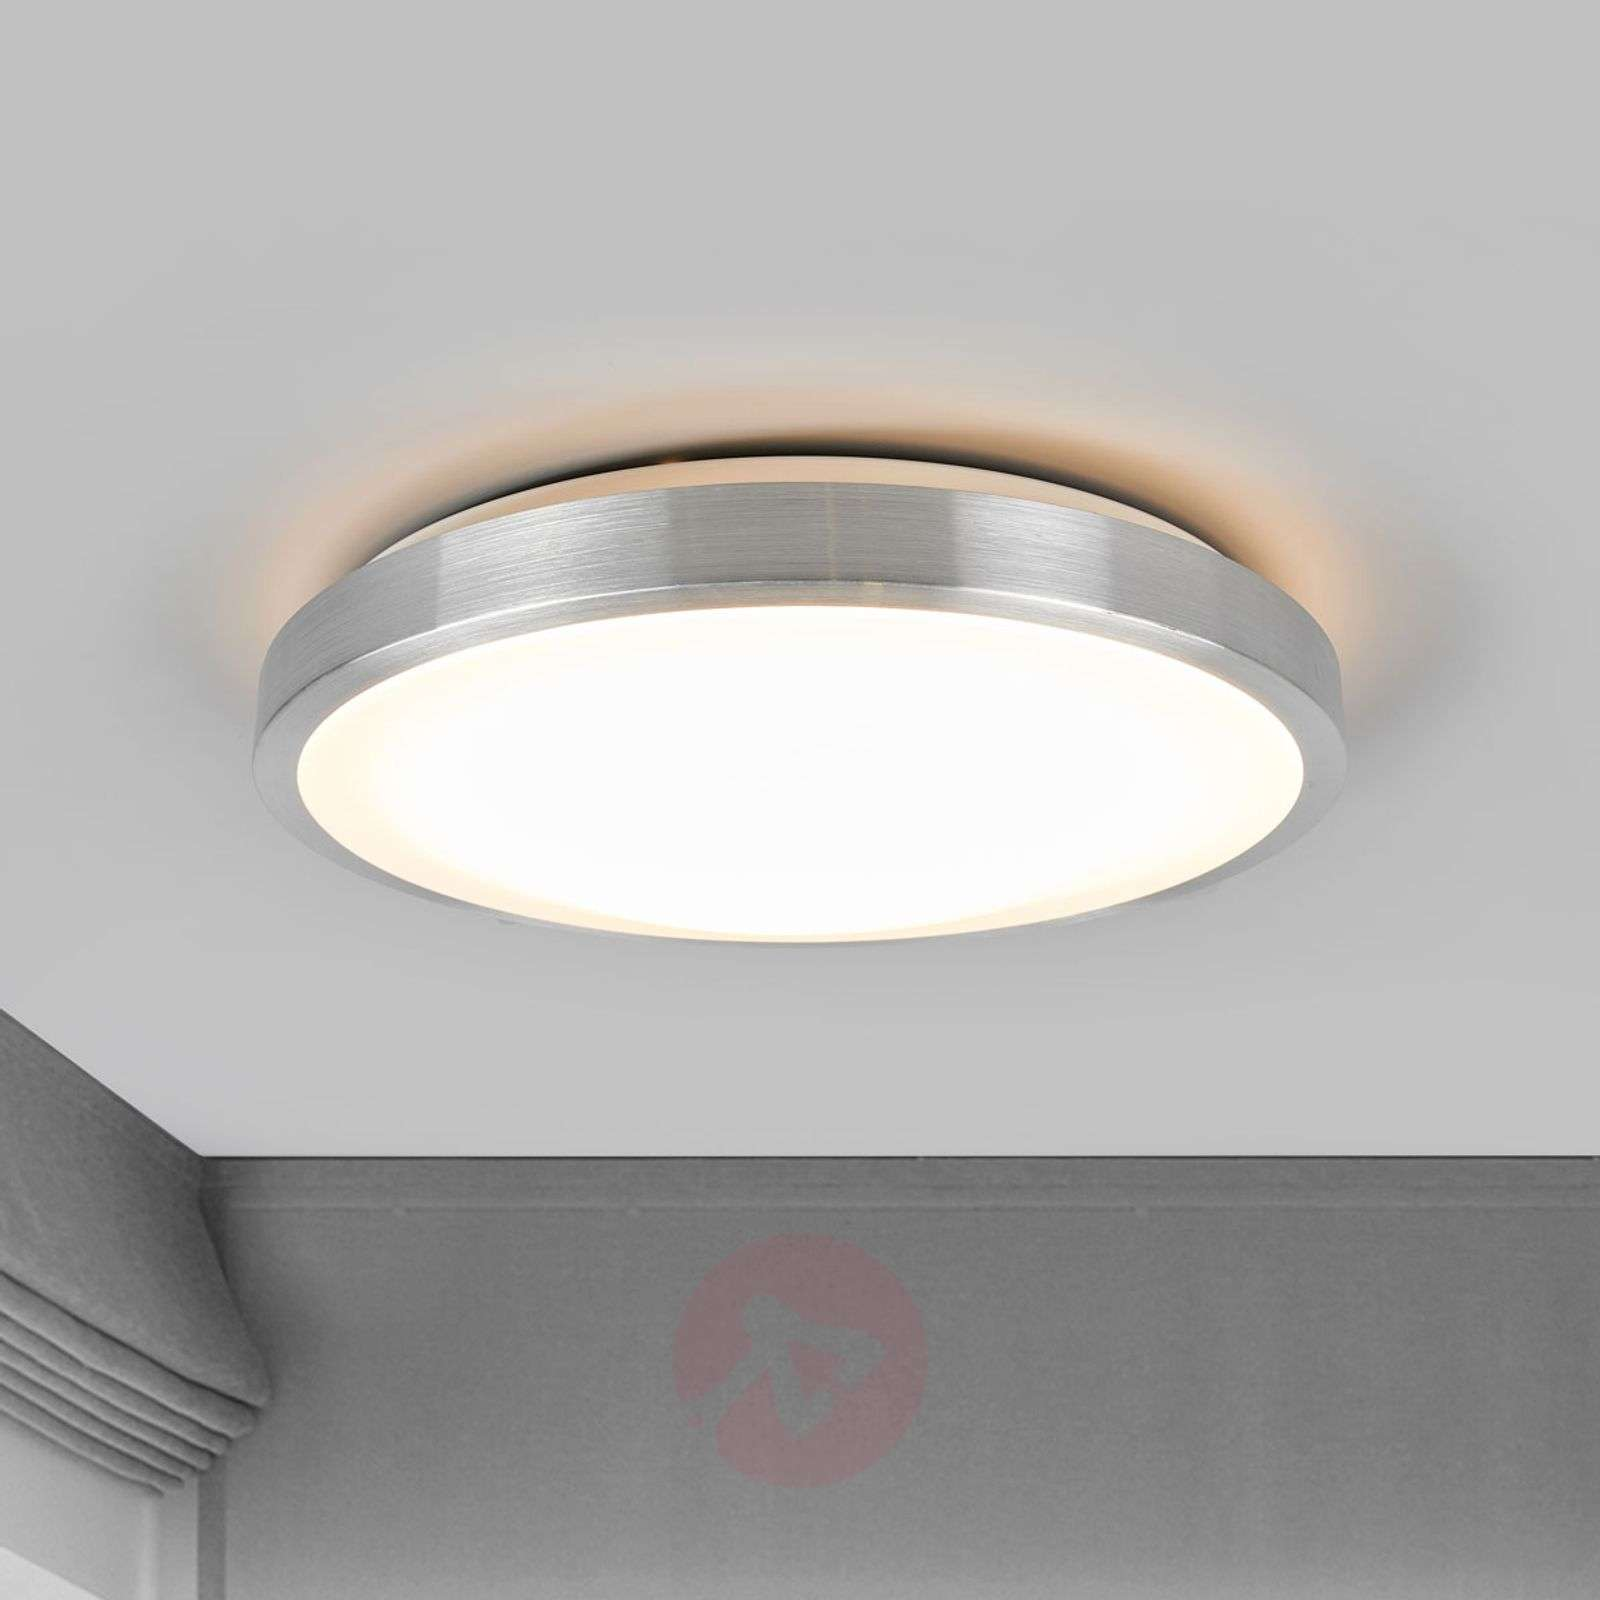 Simple LED ceiling light Jasmin, round lampshade-9974019-01